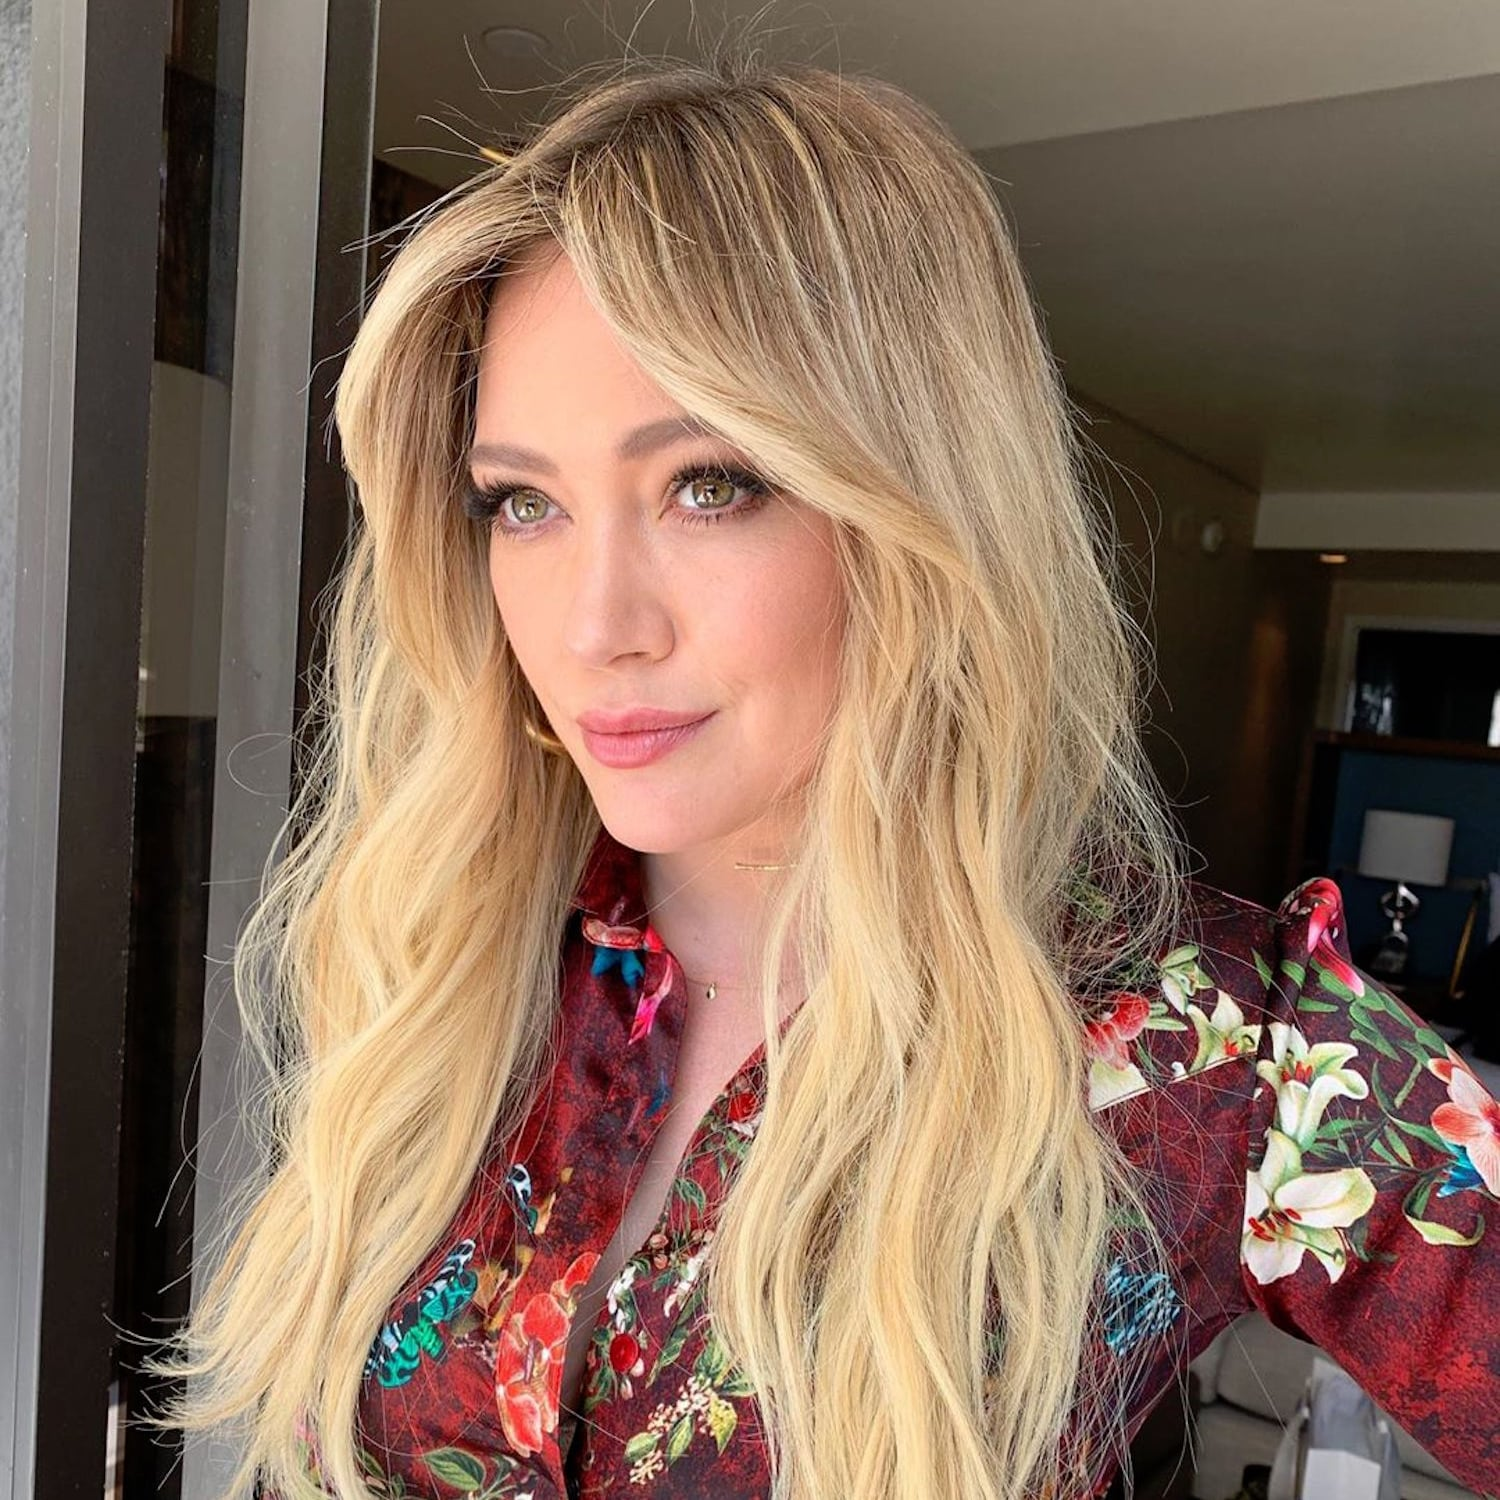 Hilary Duff Bangs Haircut May 2019 Popsugar Beauty